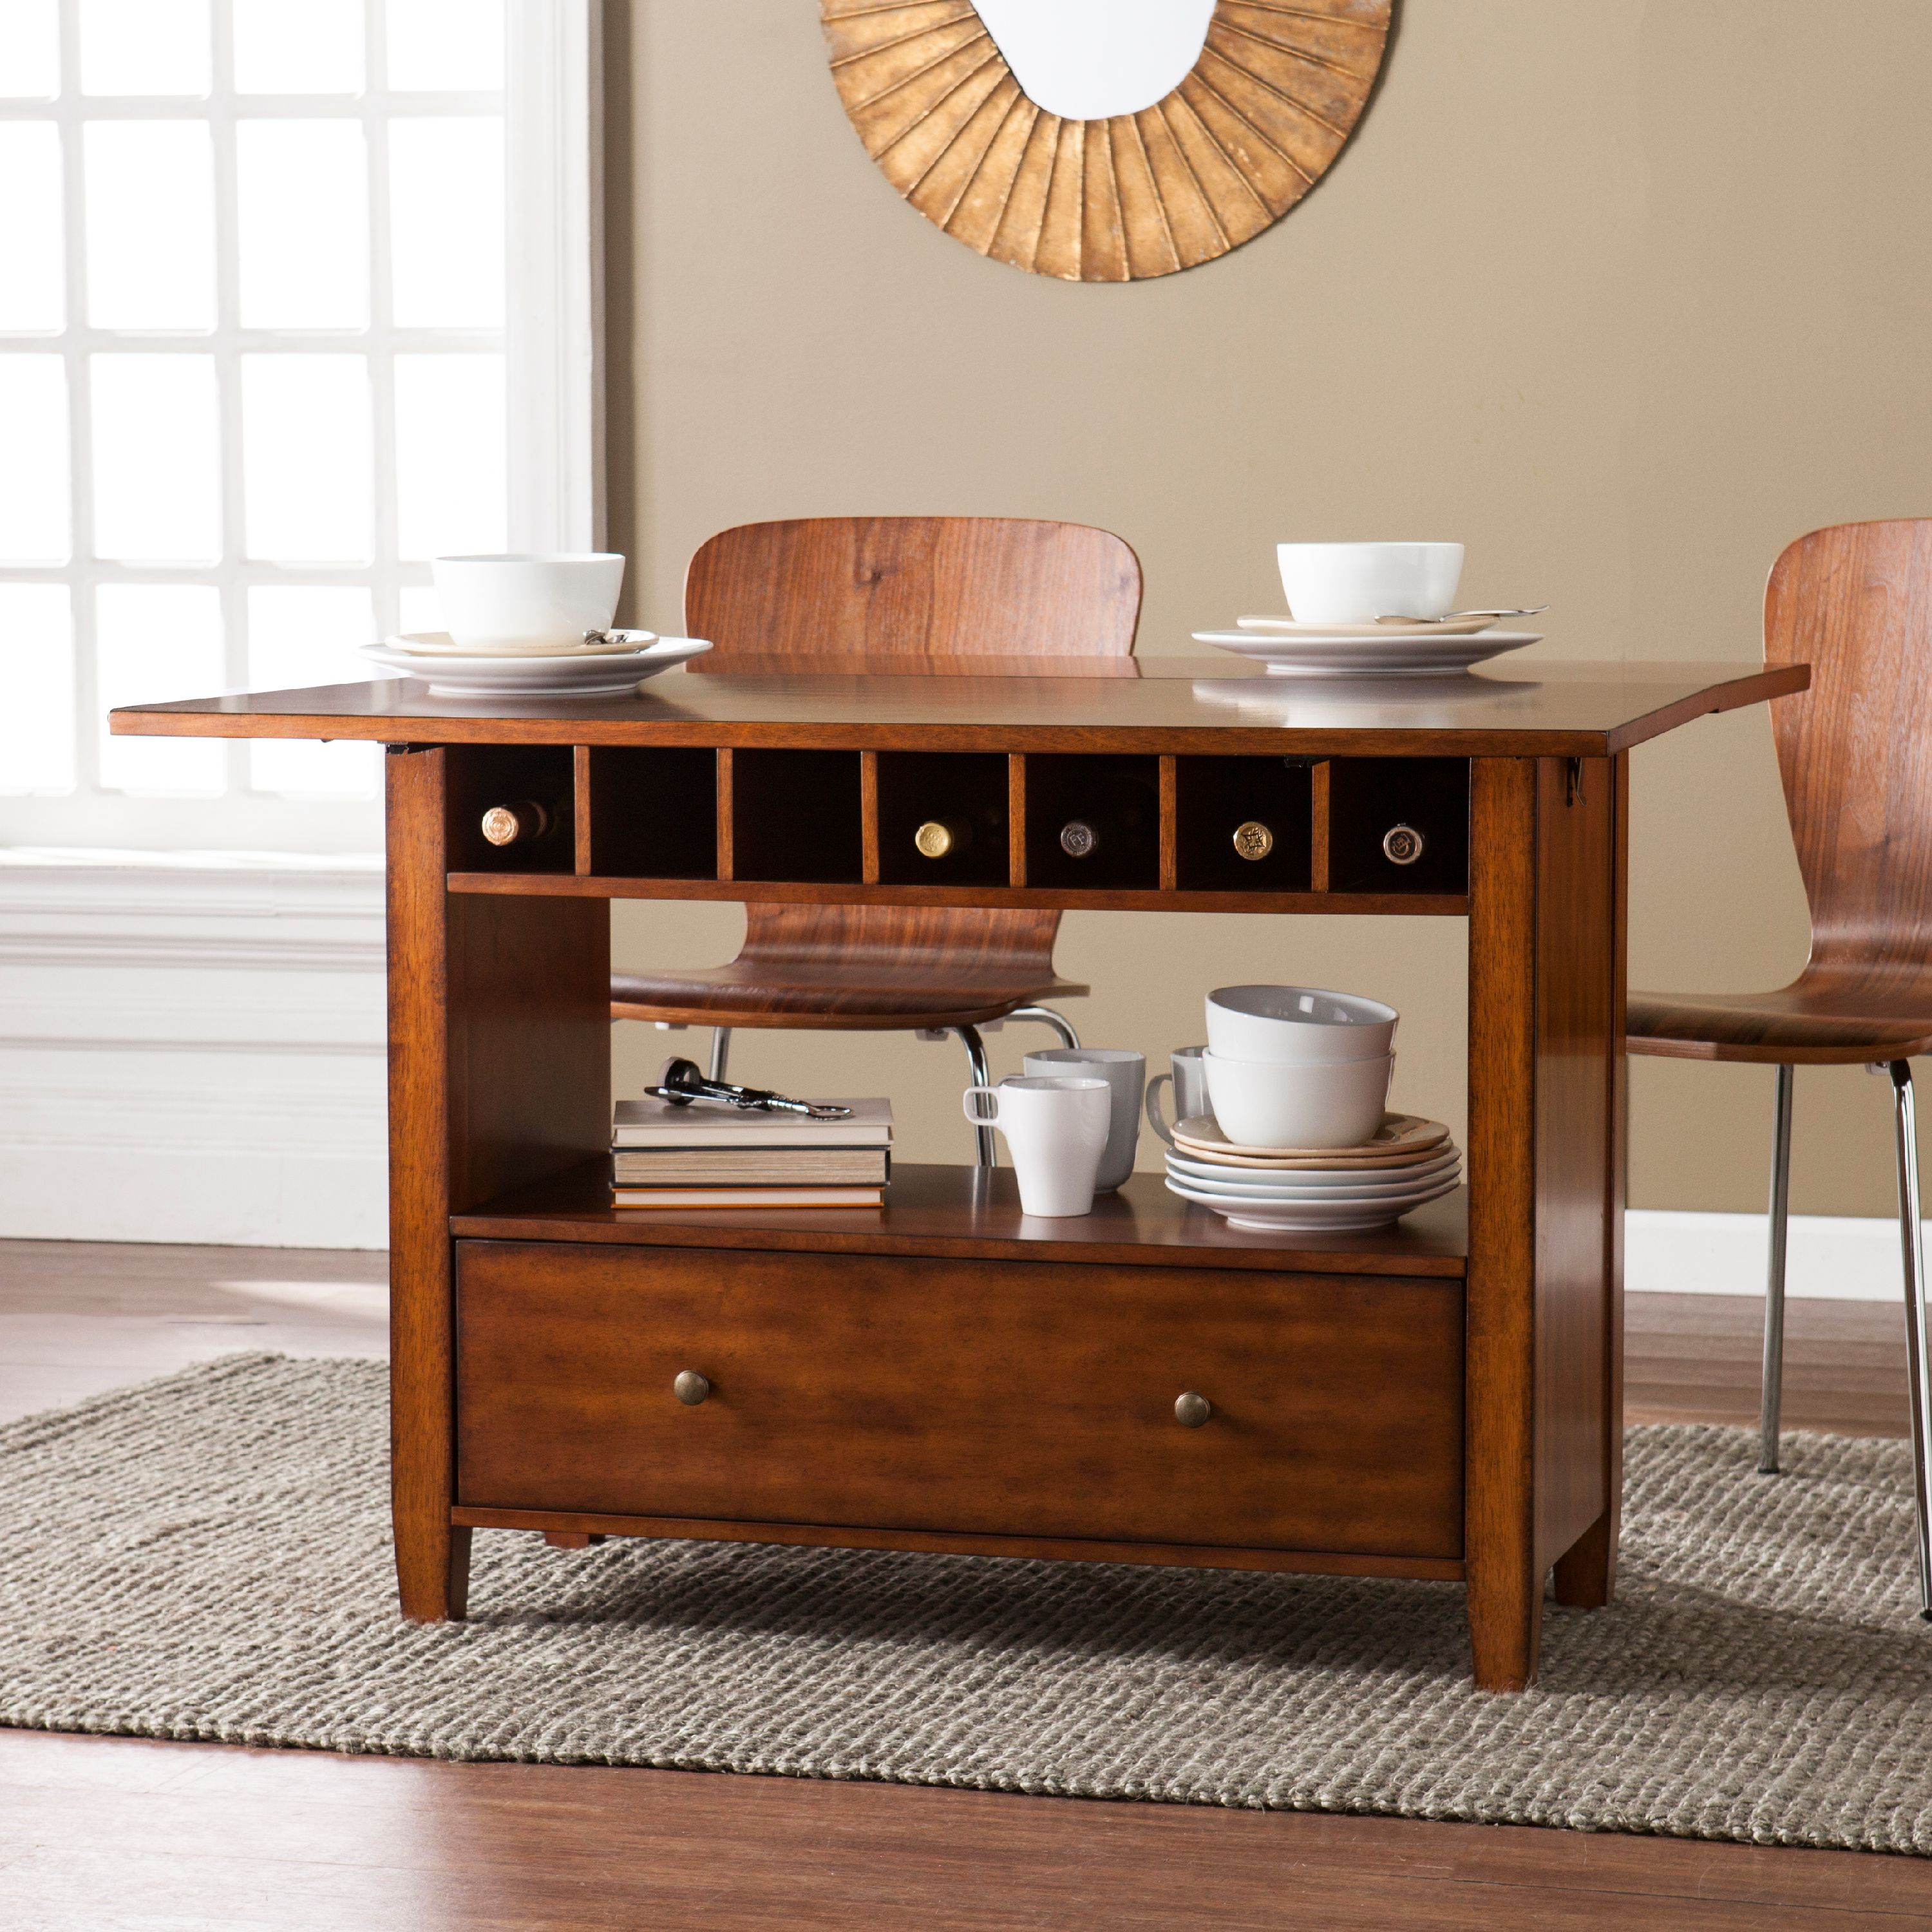 Southern Enterprises Ayrille Convertible Console to Dining Table, Oak Saddle